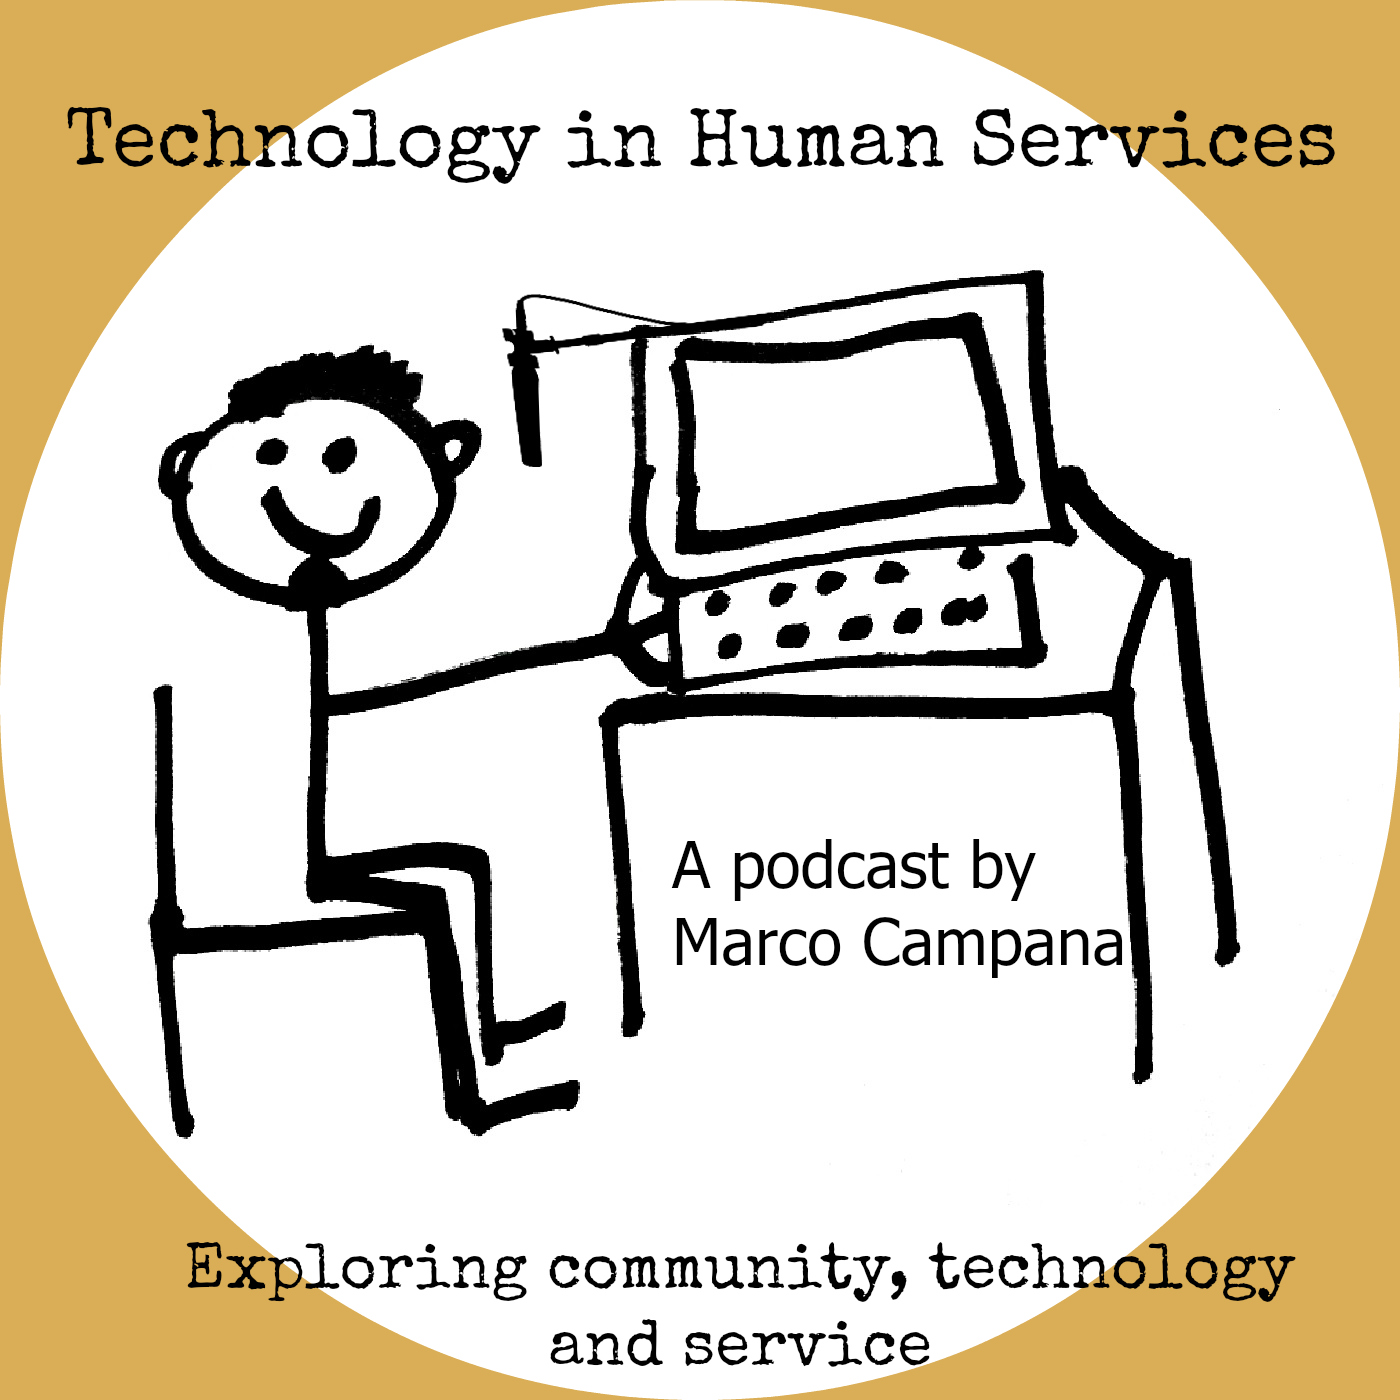 Technology in Human Services